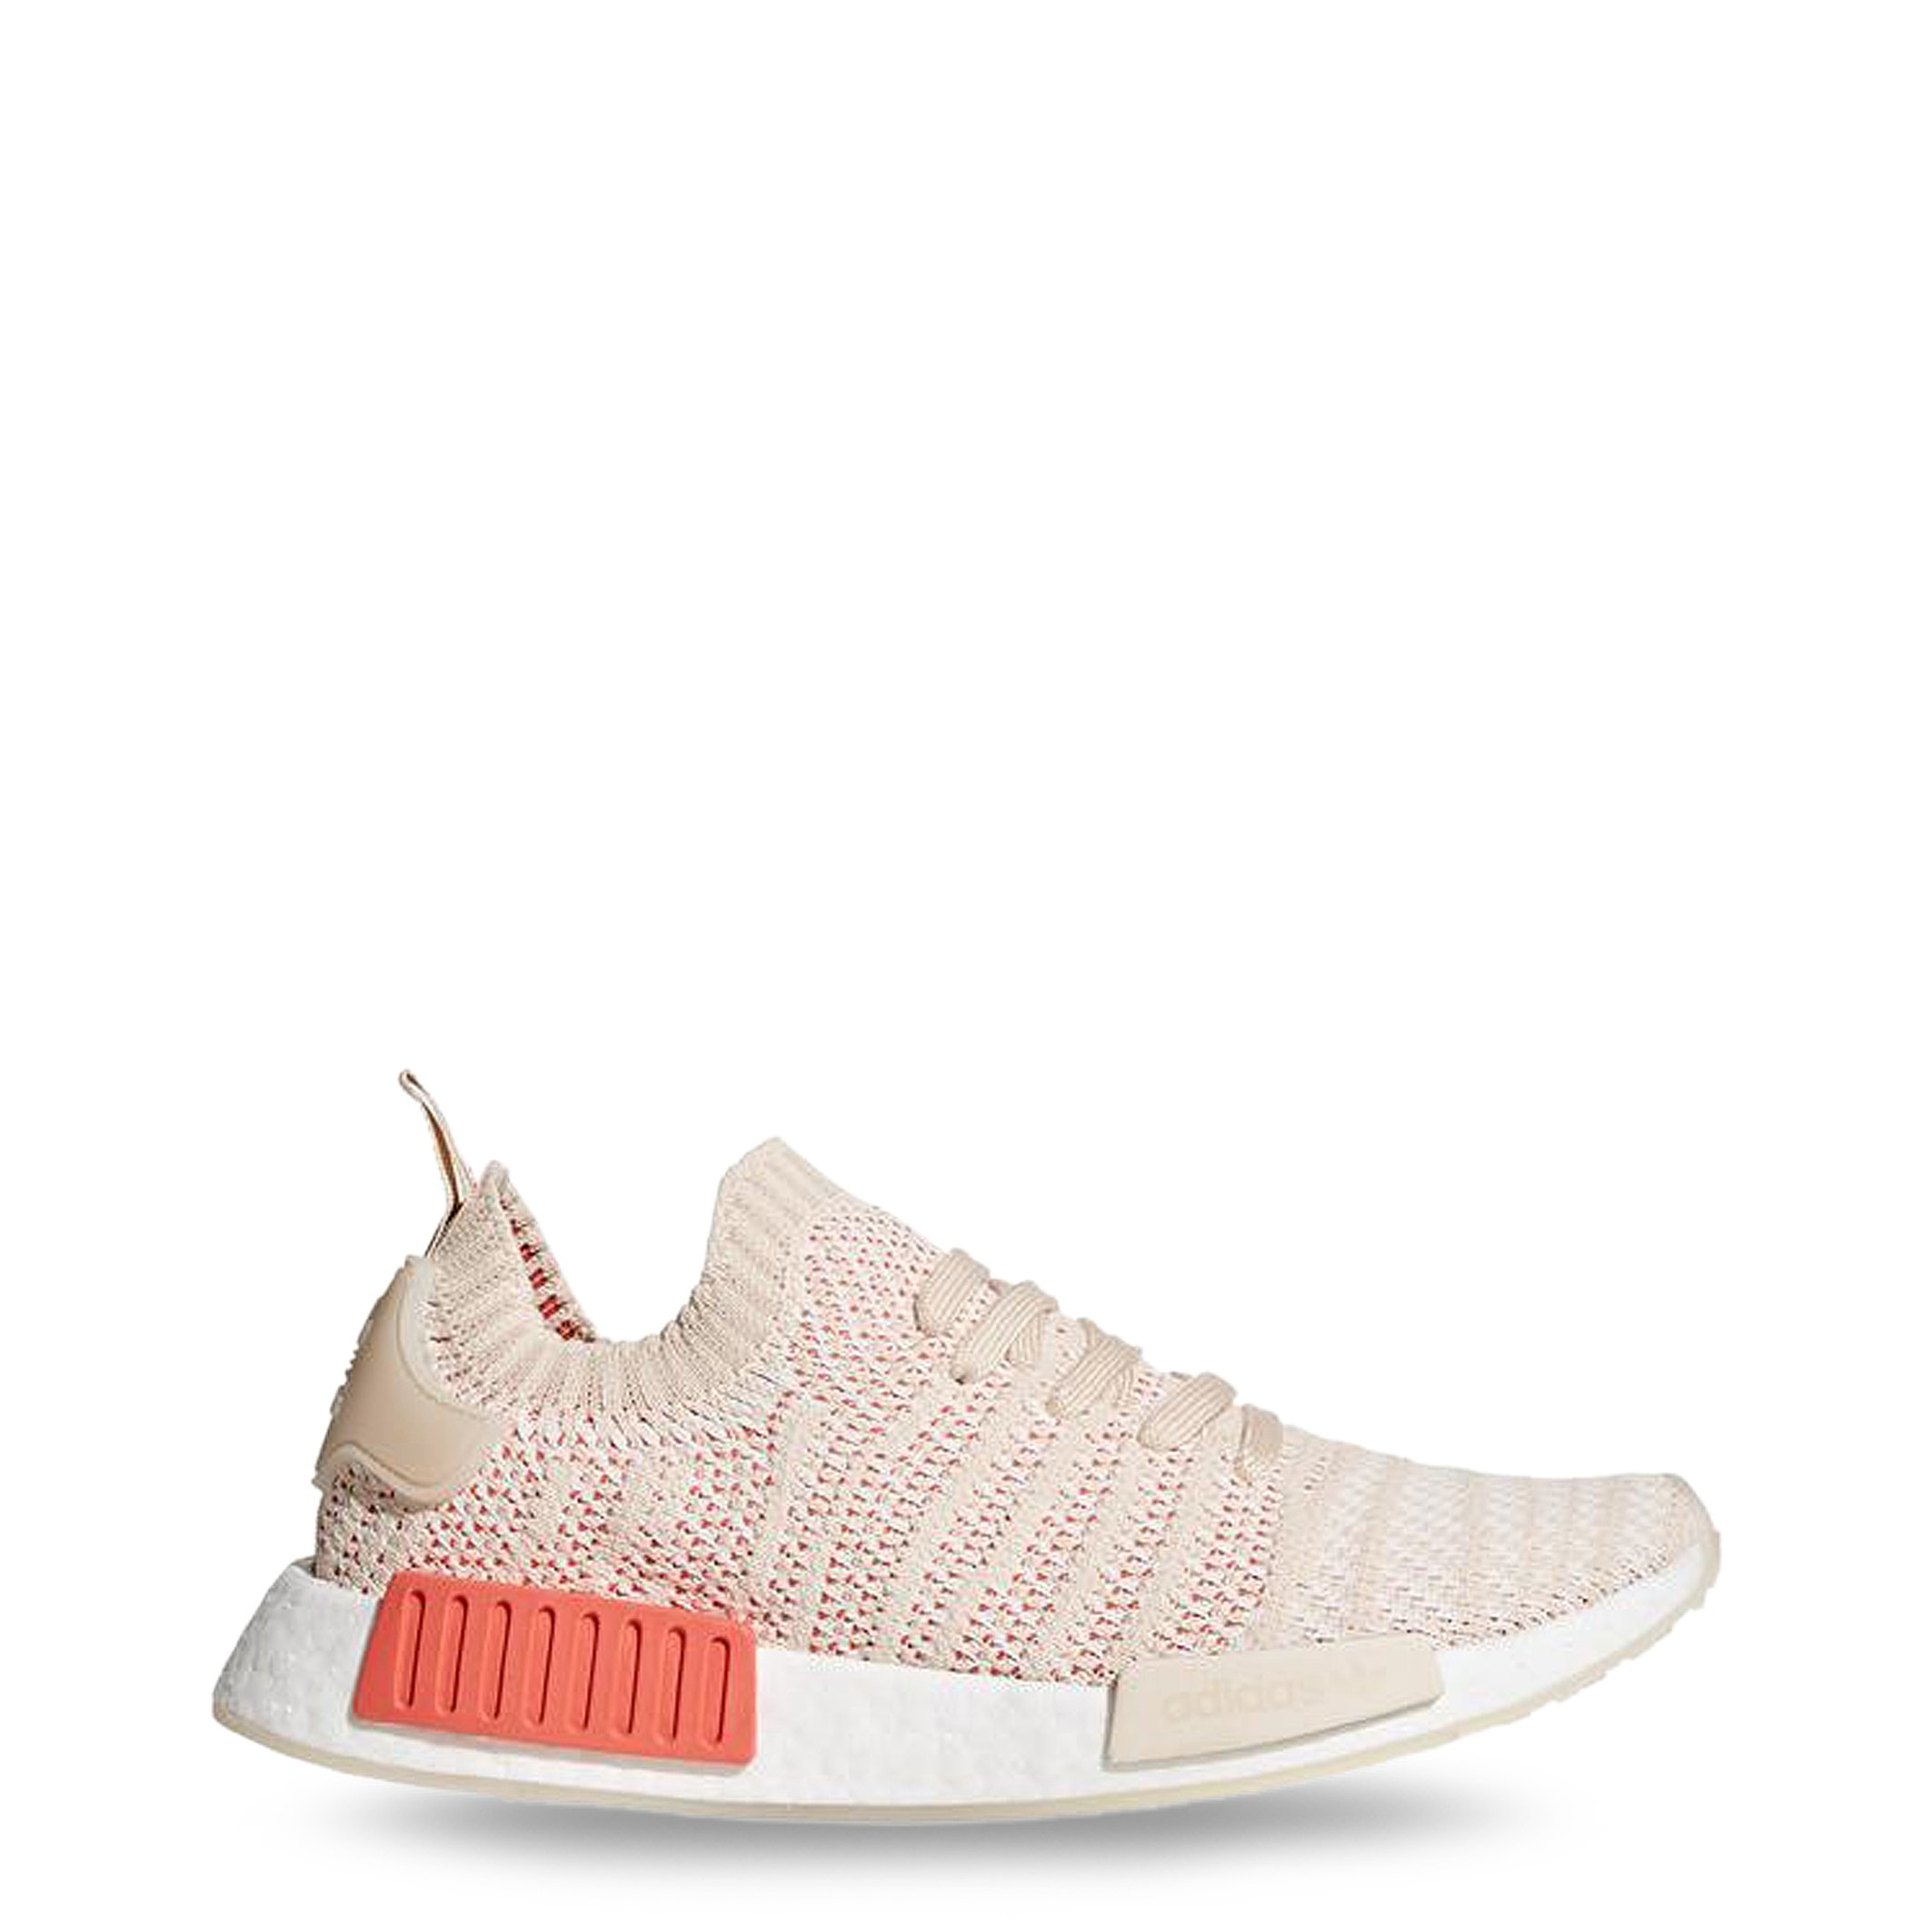 Adidas Unisex NMD Trainer Various Colours AC8326 - pink-1 4 UK